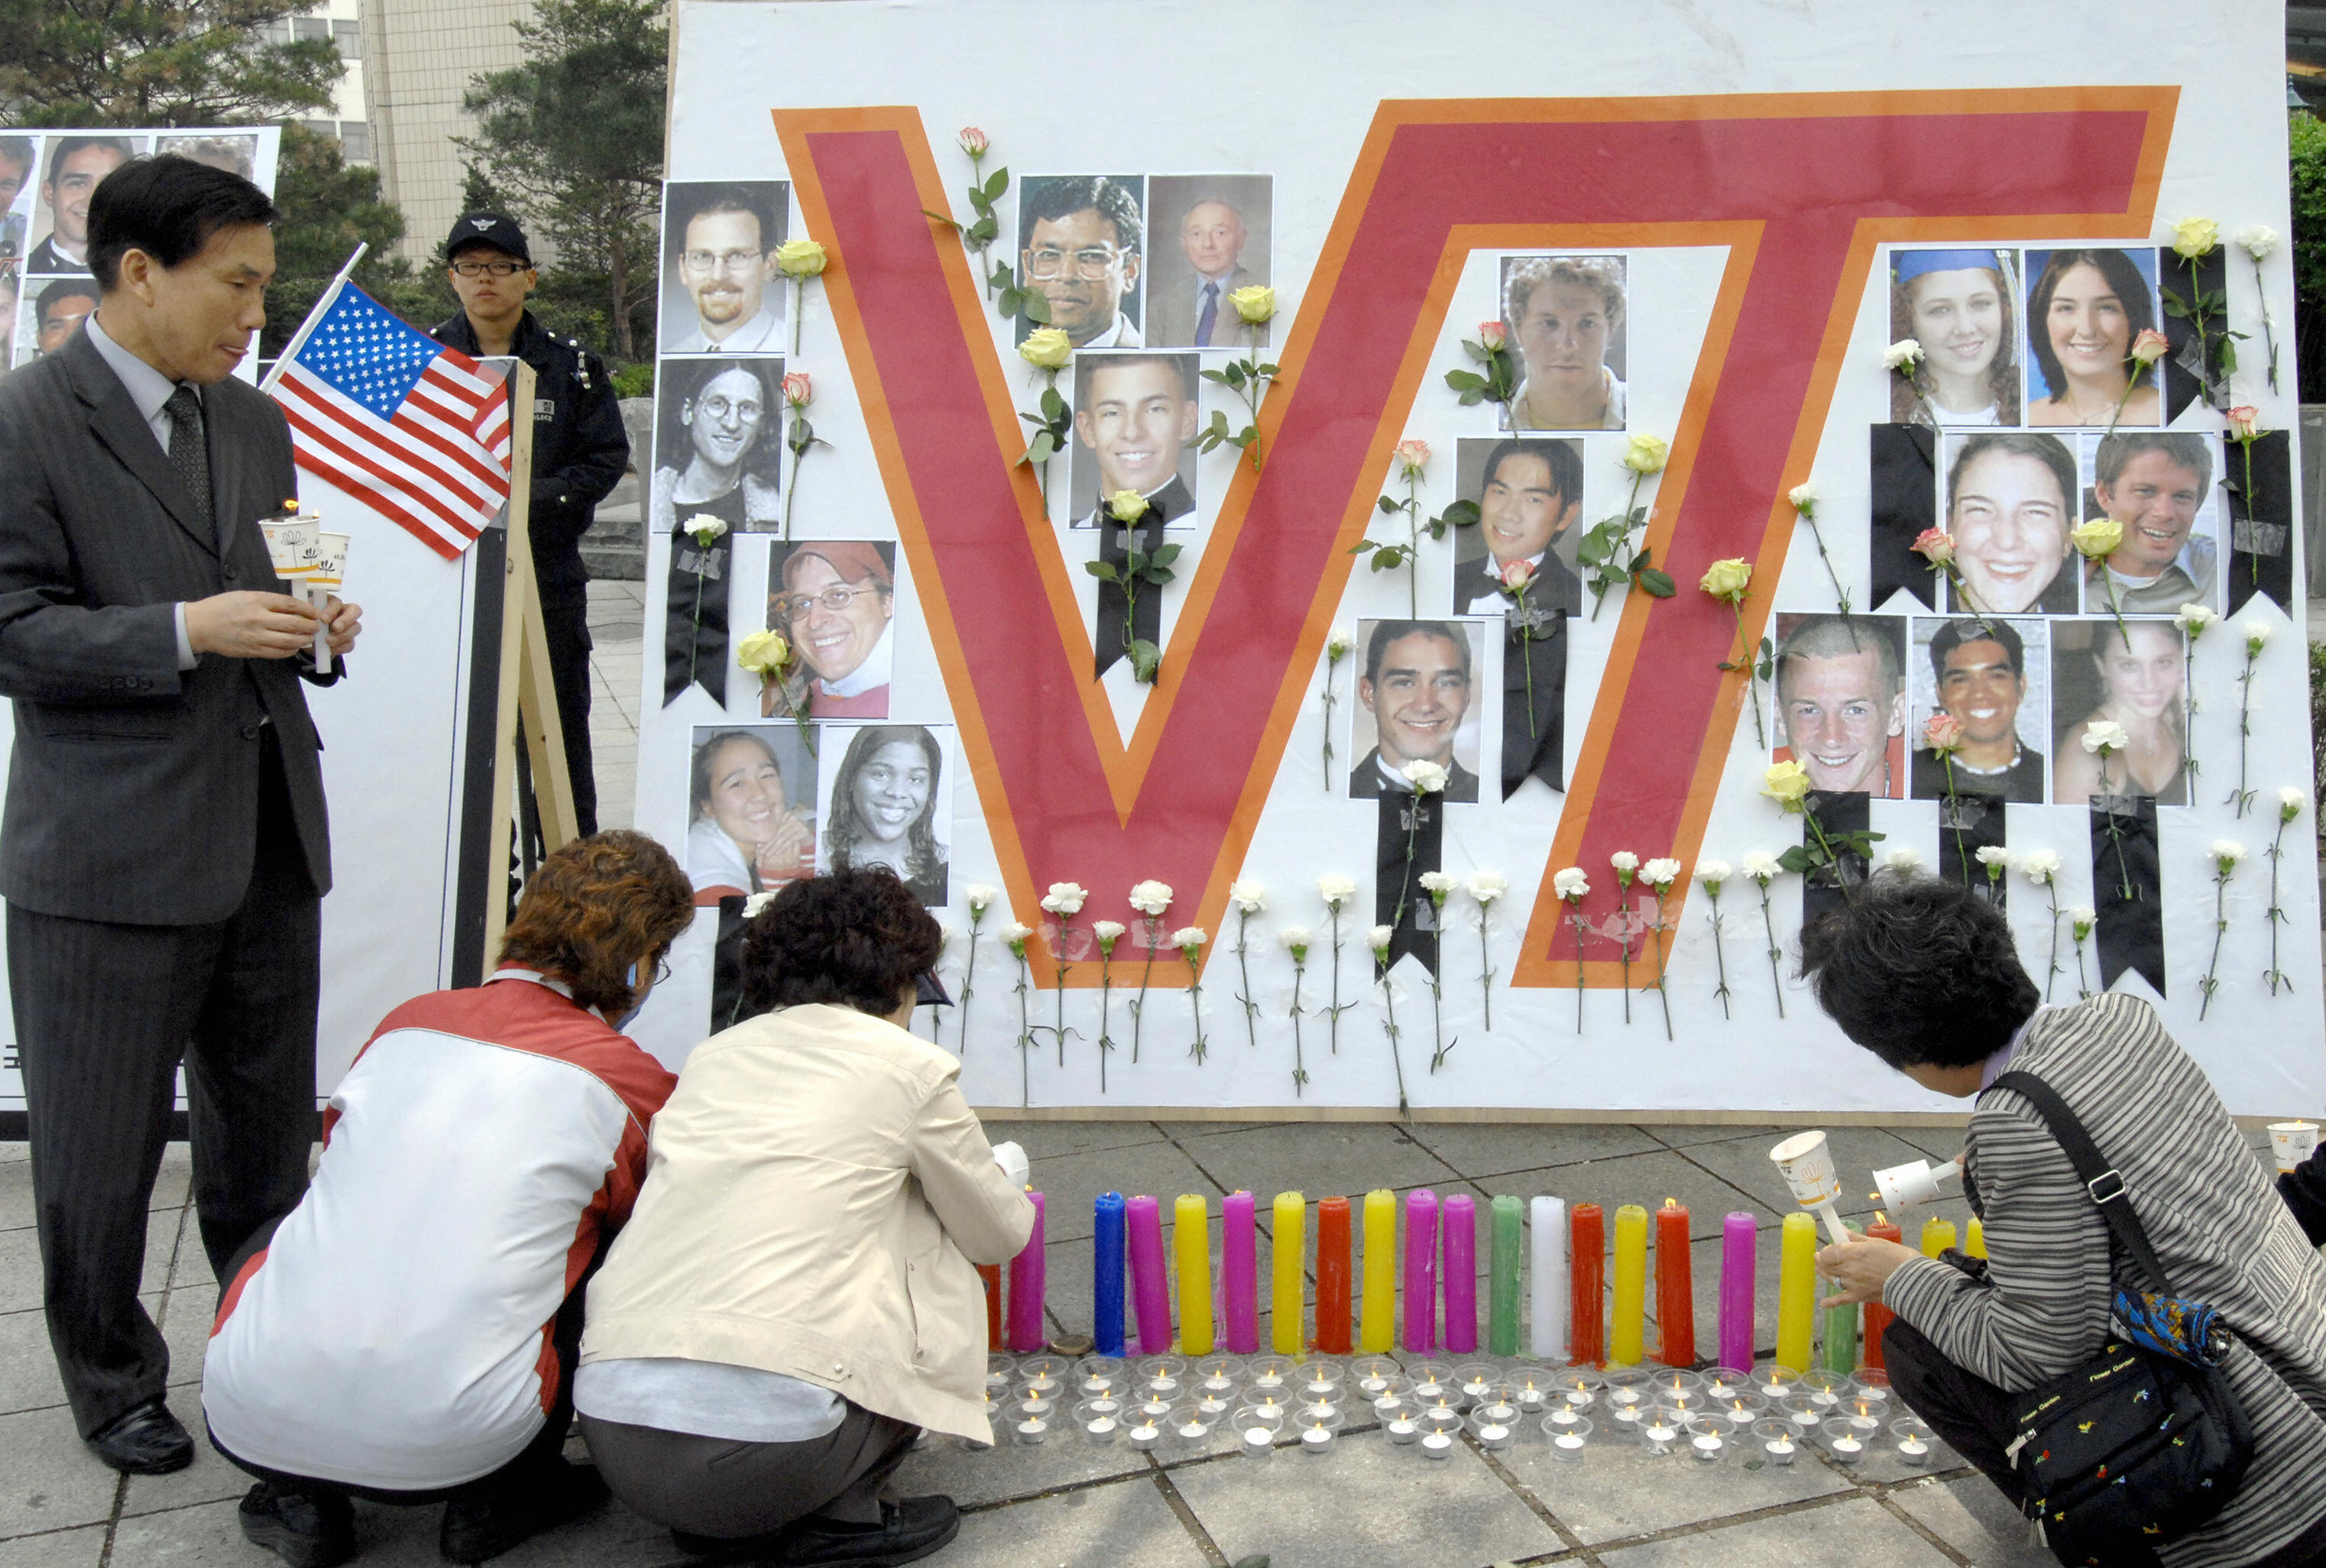 South Koreans light candles at a memorial in front of the US embassy in Seoul, 21 April 2007, in memory of the victims of the Virginia Tech massacre.